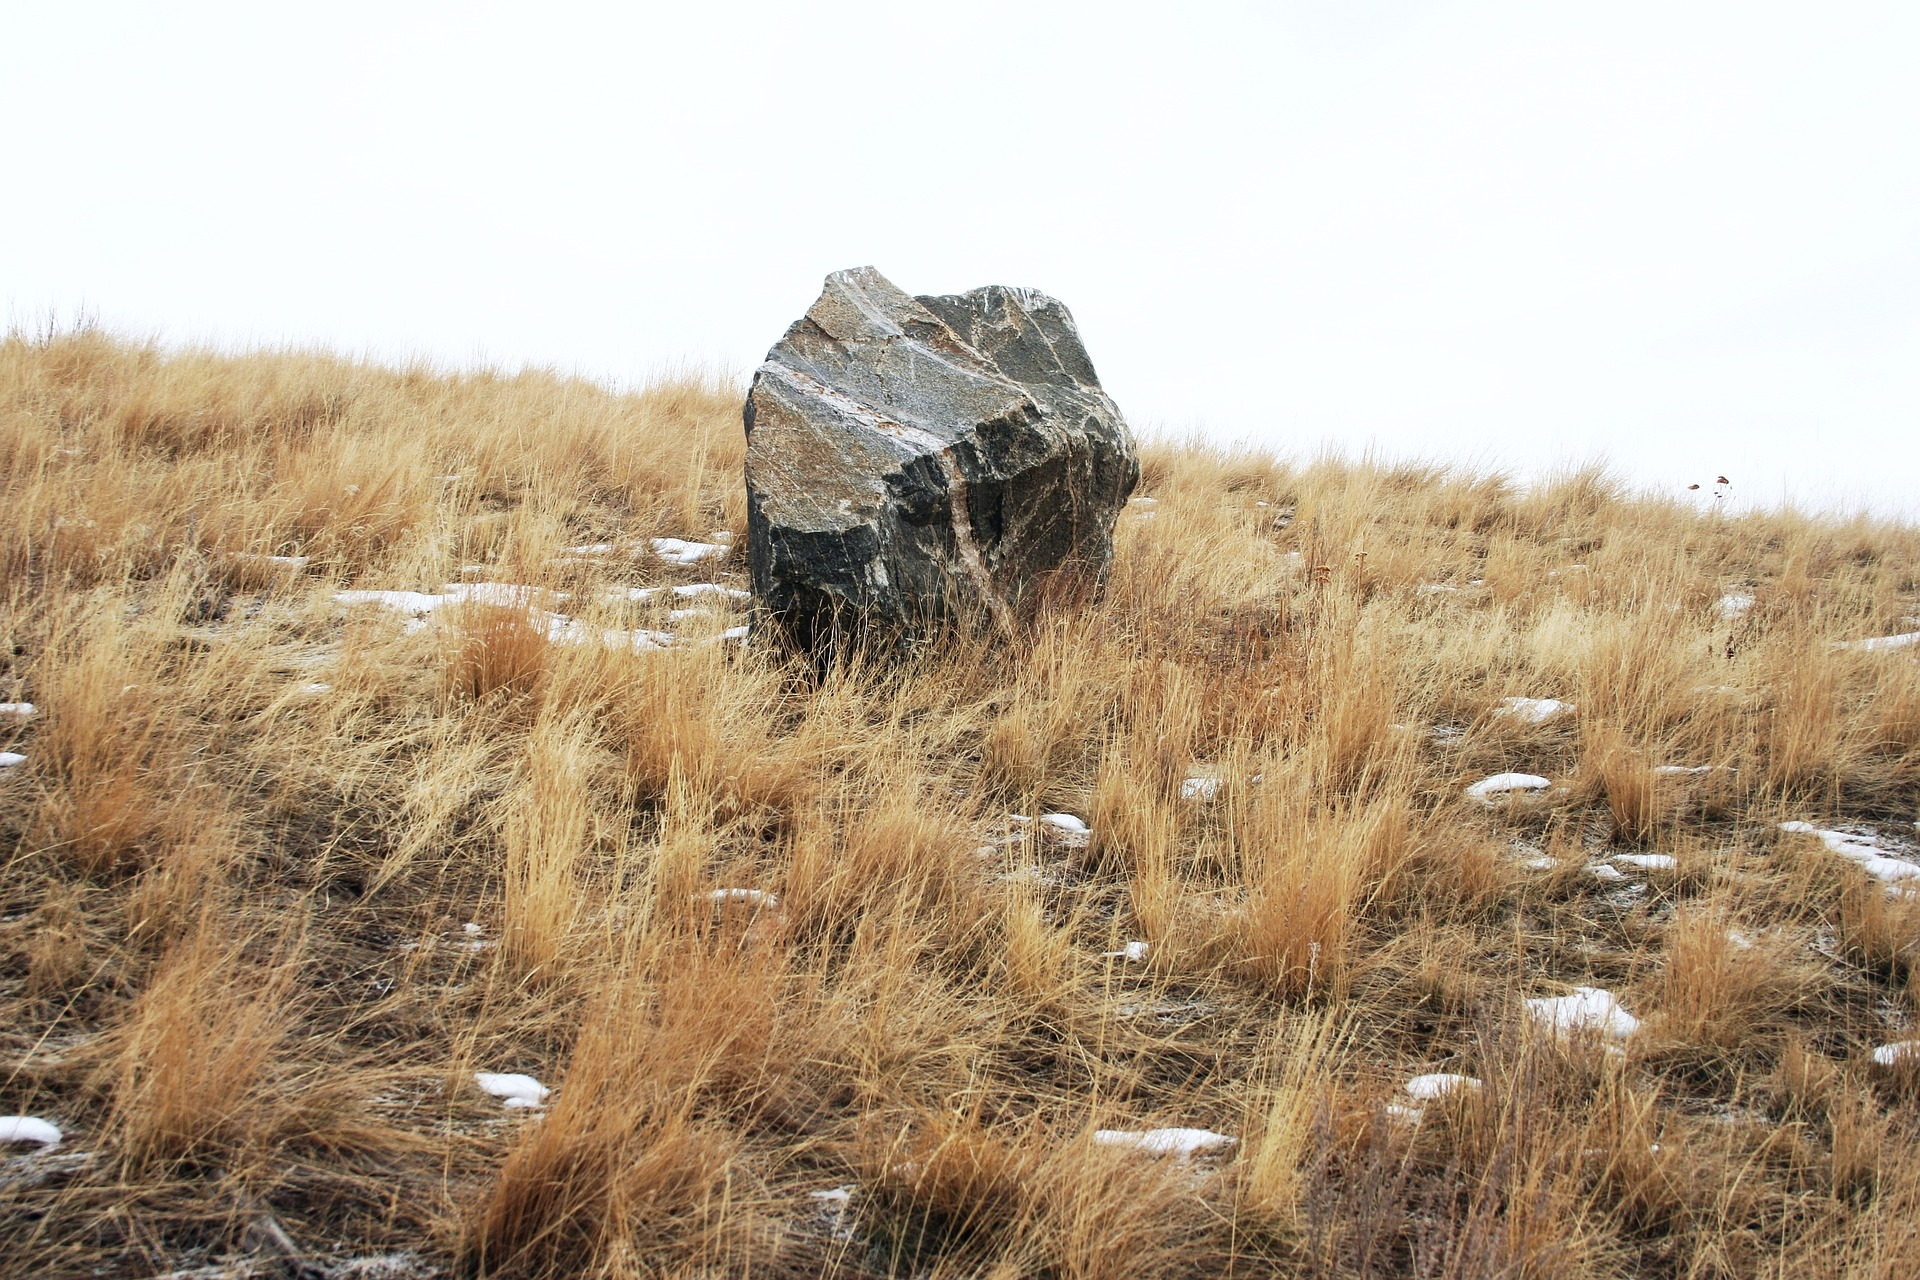 Image of a large rock resting on a hillside